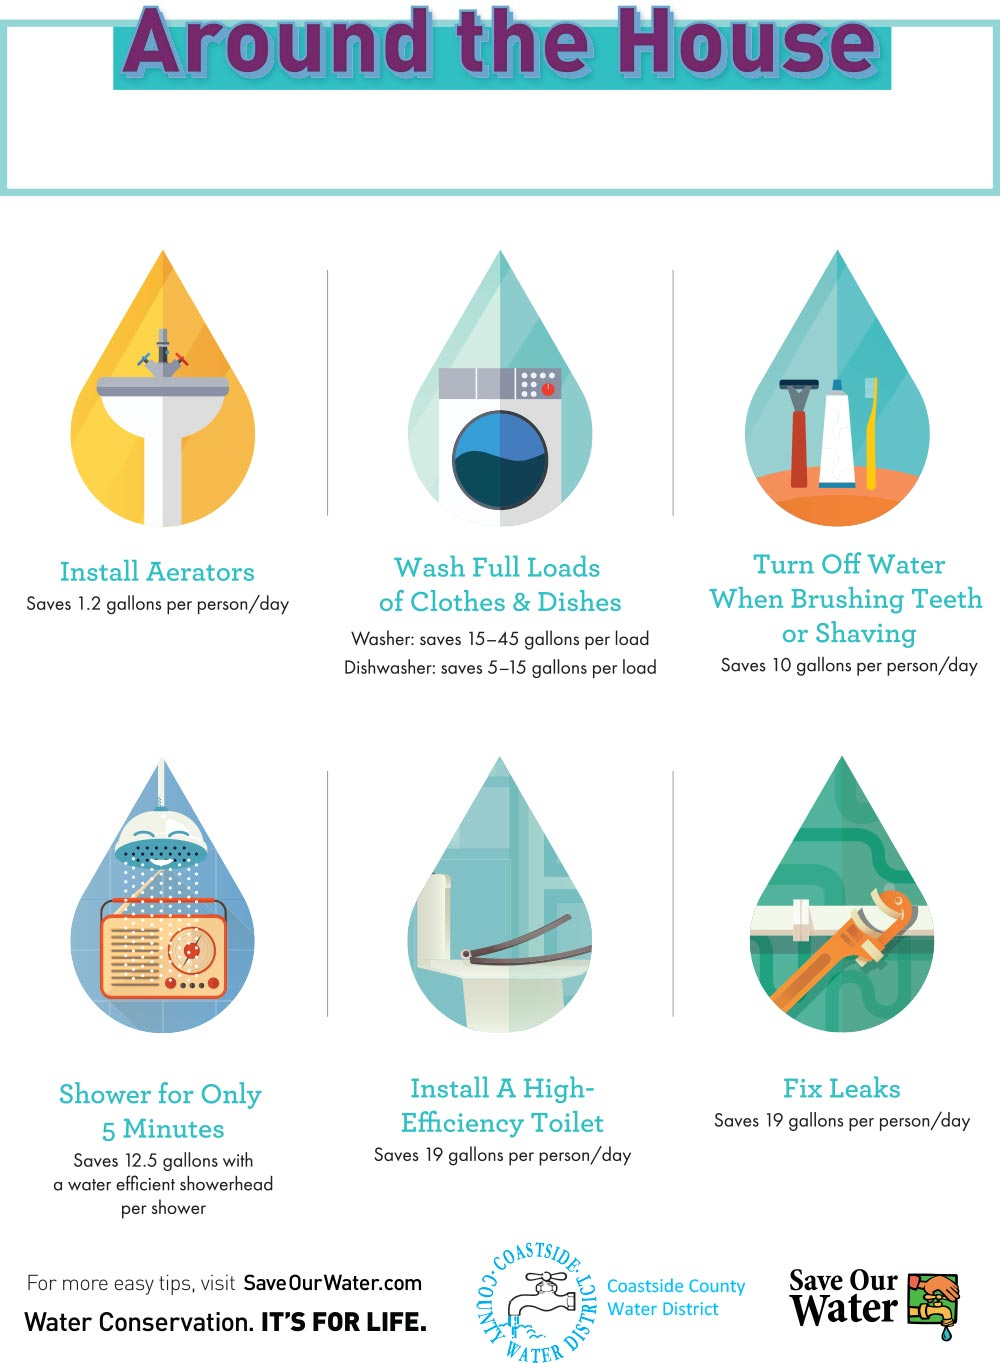 Indoor Water Conservation Tips - click to download PDF